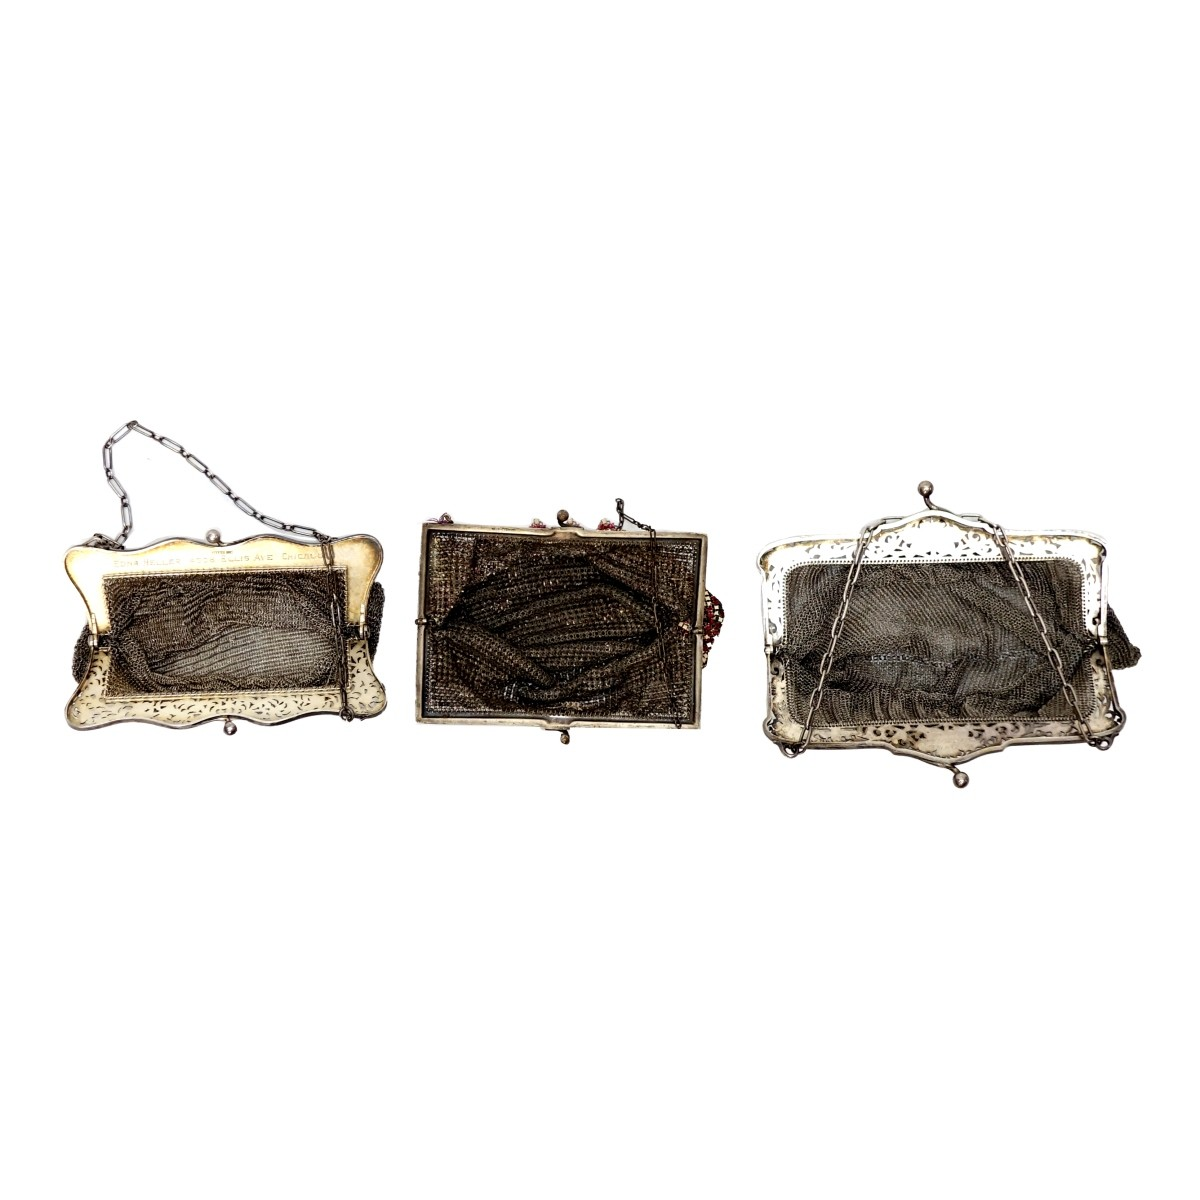 Three Antique Mesh Bags